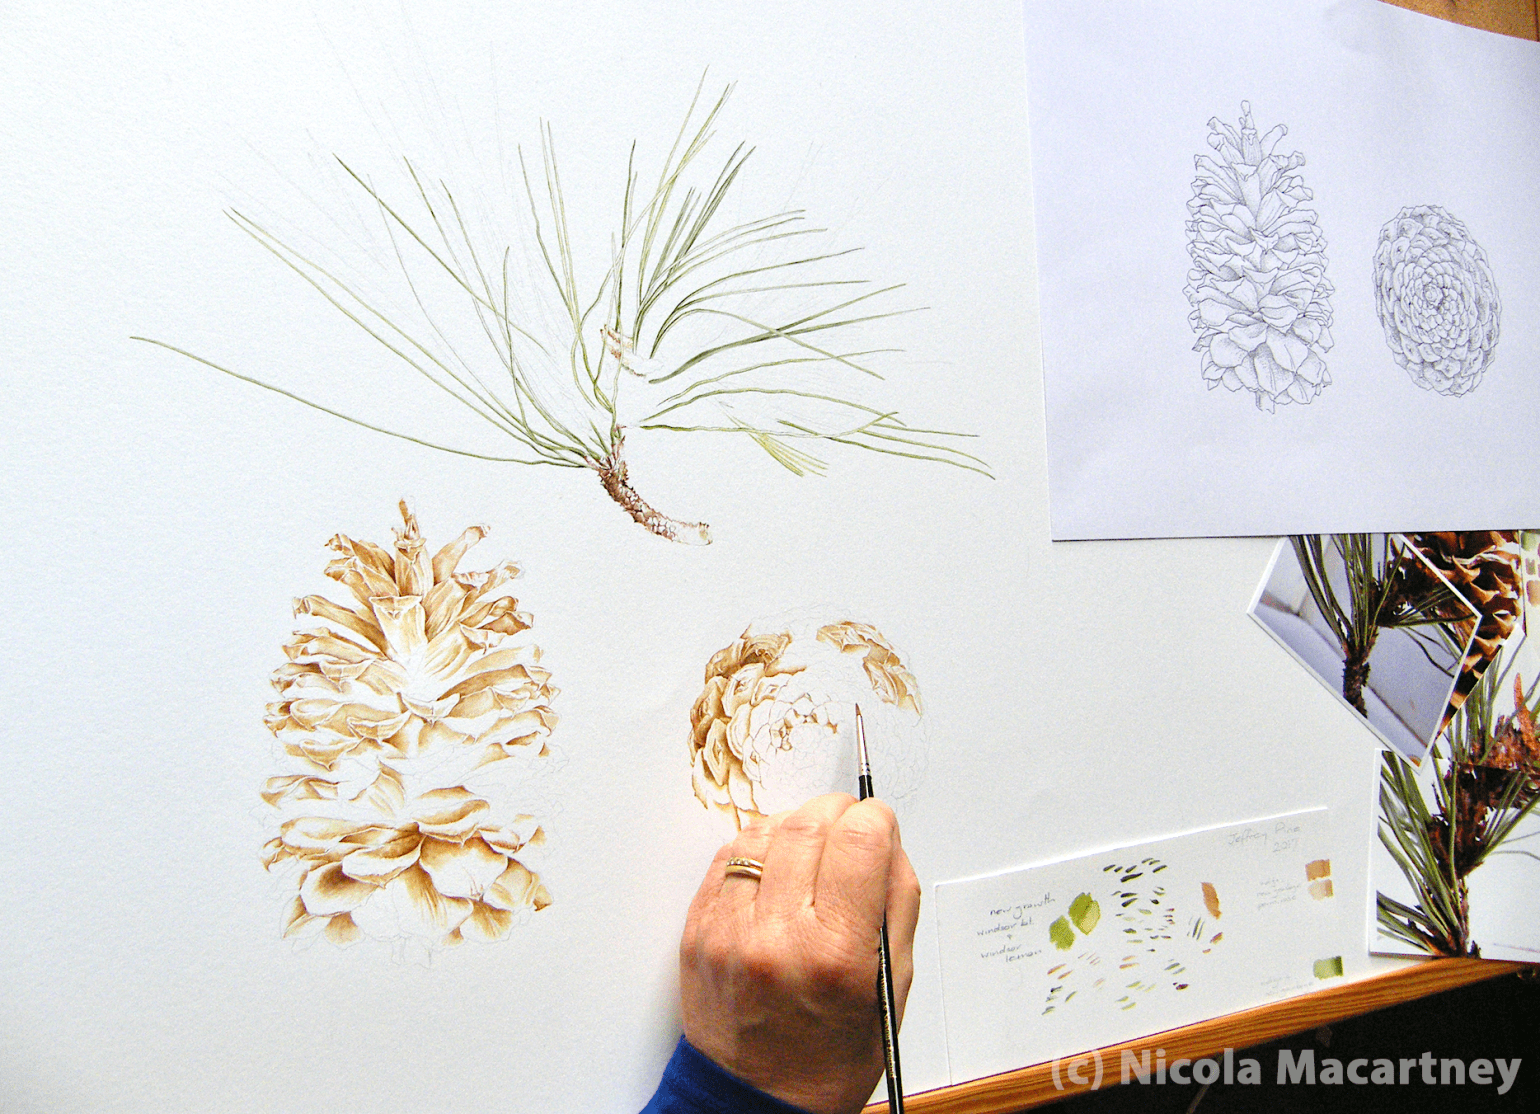 Nicola Macartney at work on the botanical print of Jeffrey Pine